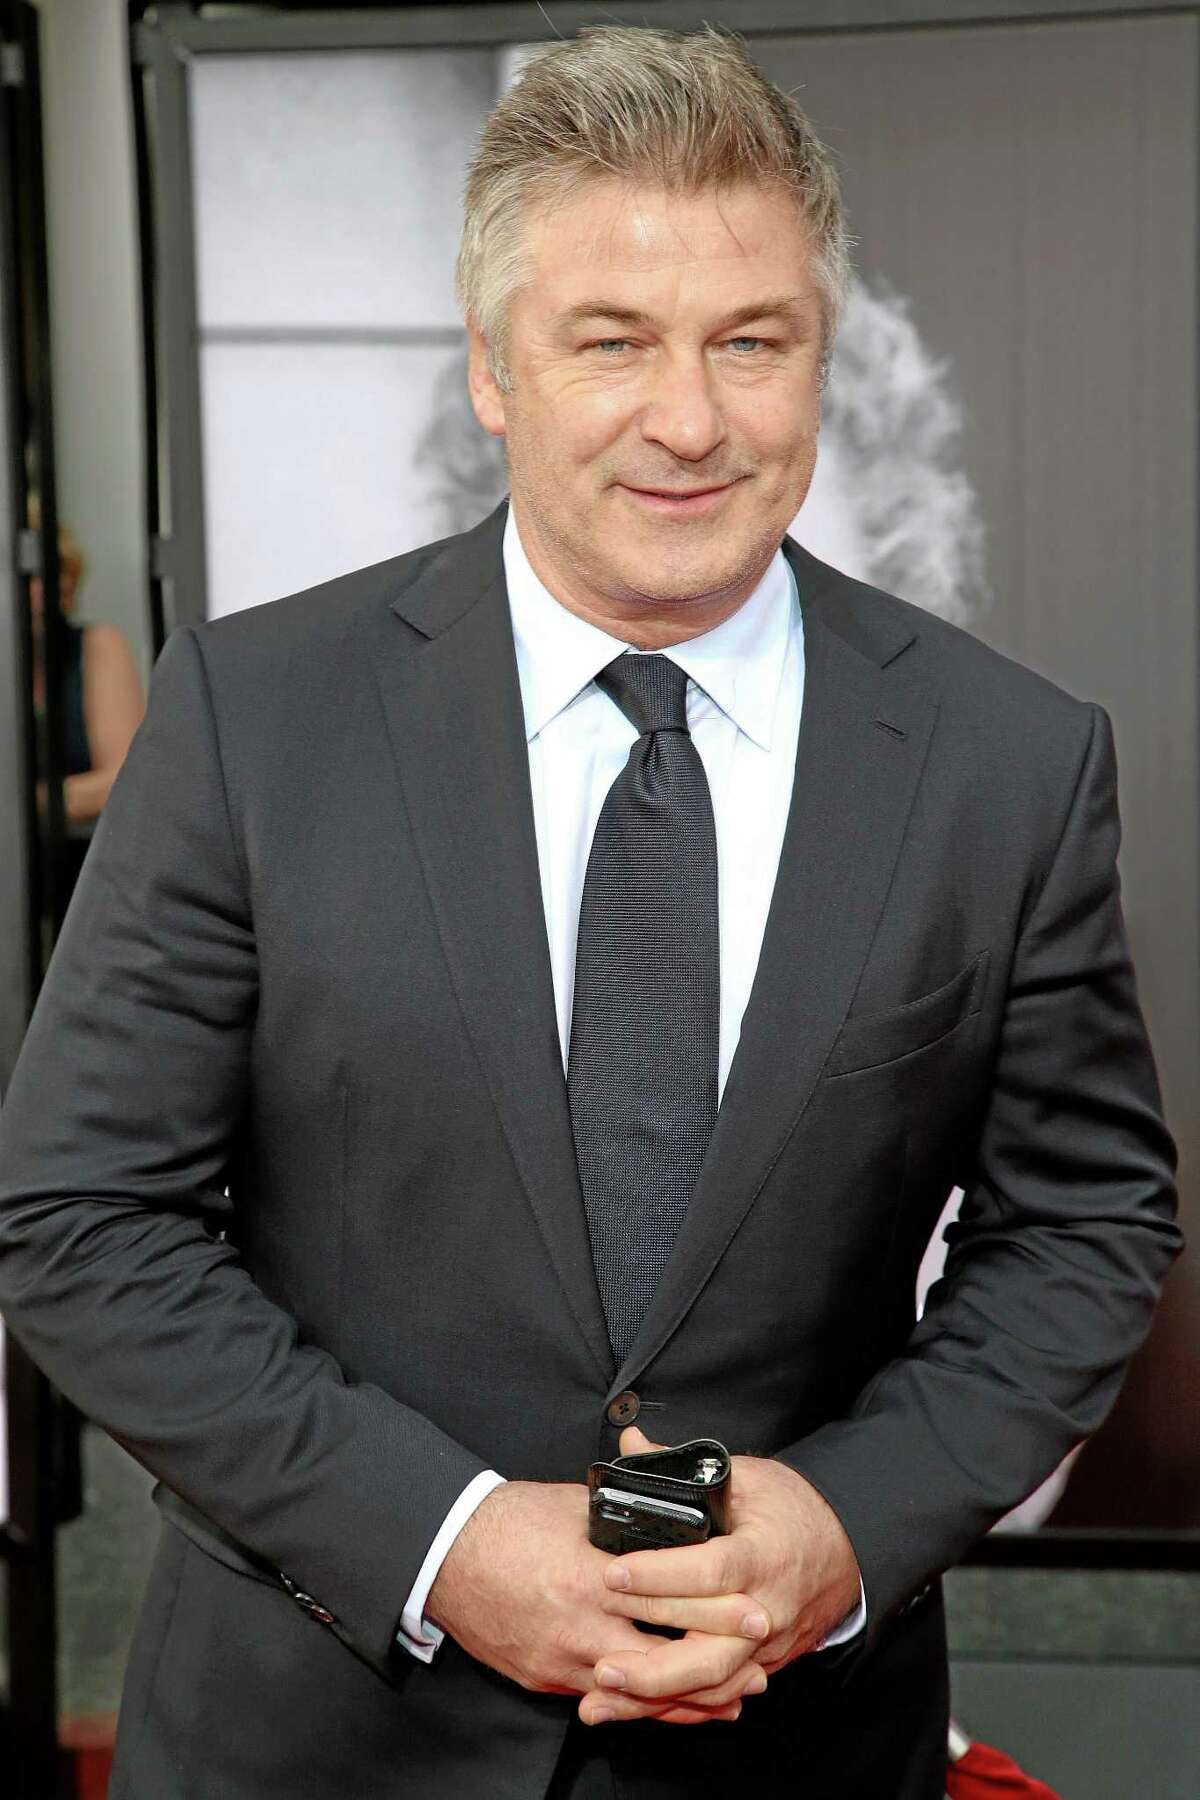 This April 10, 2014, file photo shows actor Alec Baldwin at the 2014 TCM Classic Film Festival's Opening Night Gala in Los Angeles. Police in New York City say actor Alec Baldwin has been arrested for riding a bike the wrong way on the street and acting belligerently toward the arresting officers.